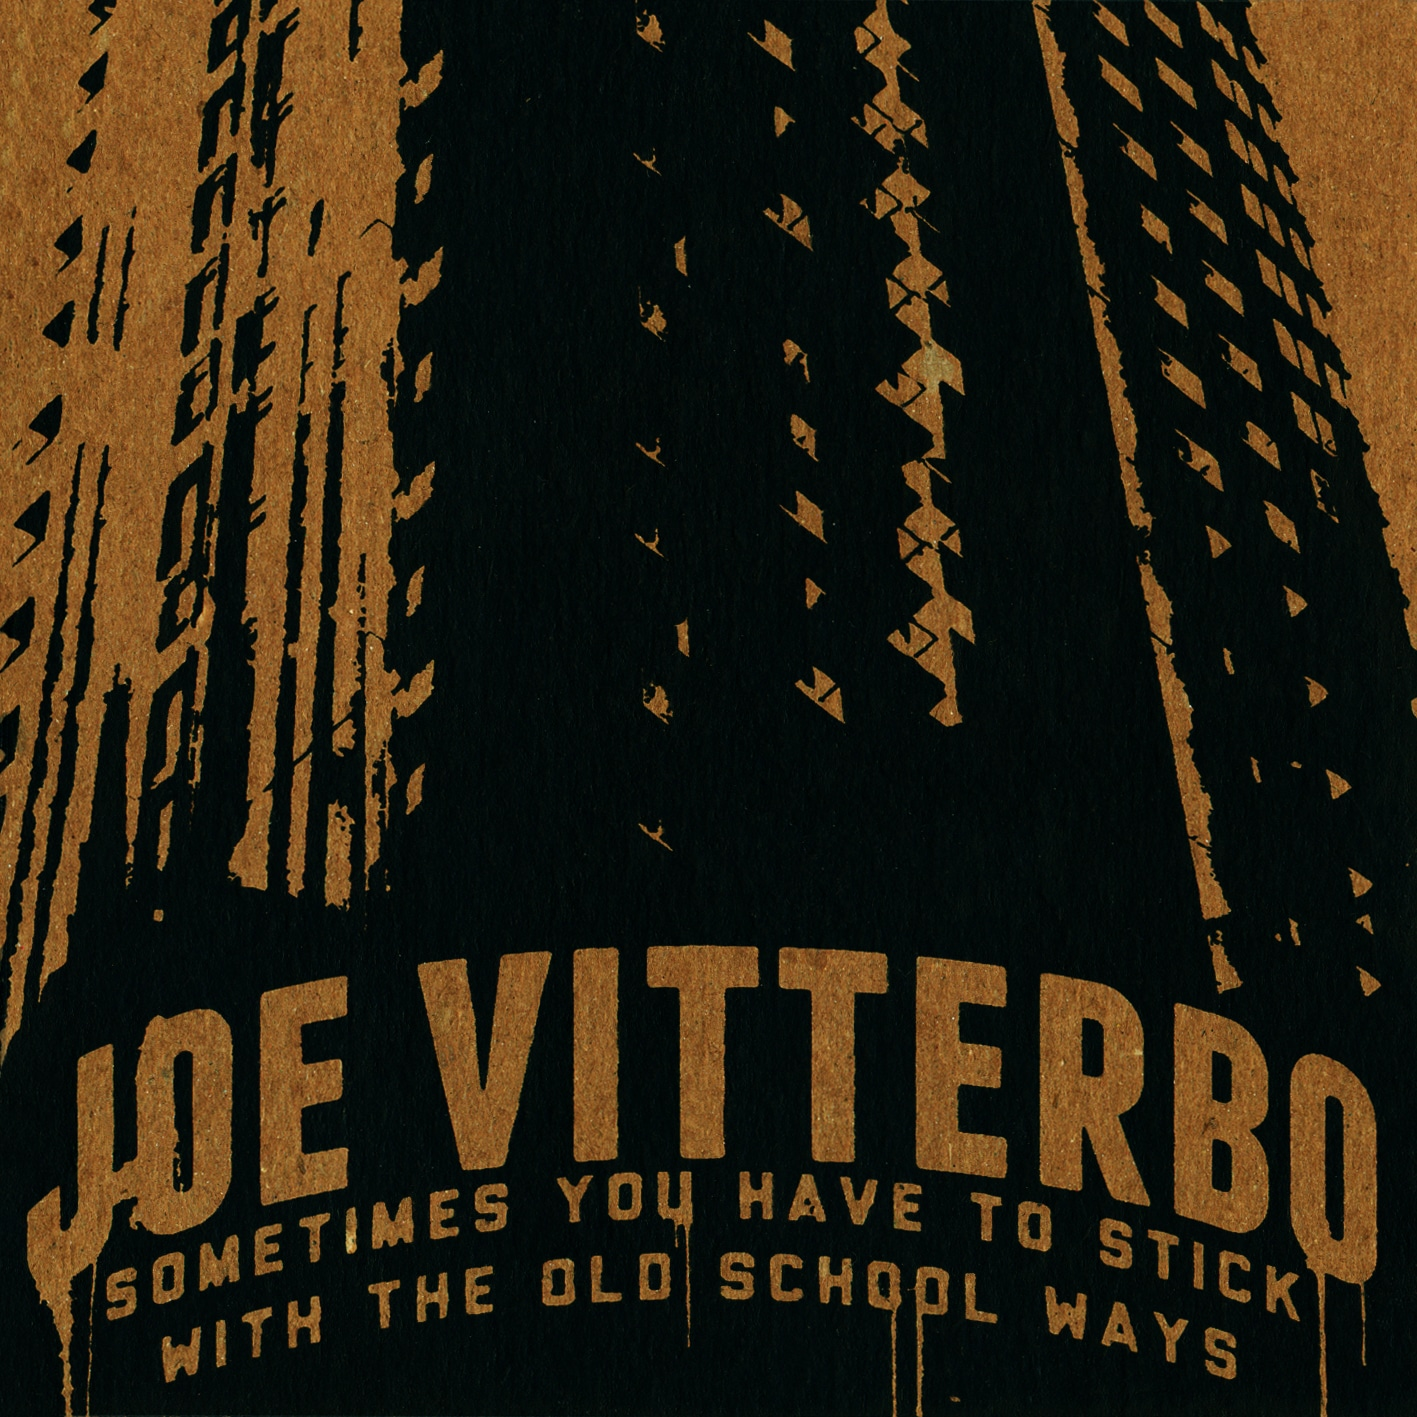 SOMETIMES YOU HAVE TO STICK WITH THE OLD SCHOOL WAYS old school Joe Vitterbo hip hop  Joe Vitterbo   SOMETIMES YOU HAVE TO STICK WITH THE OLD SCHOOL WAYS 2870566826 1